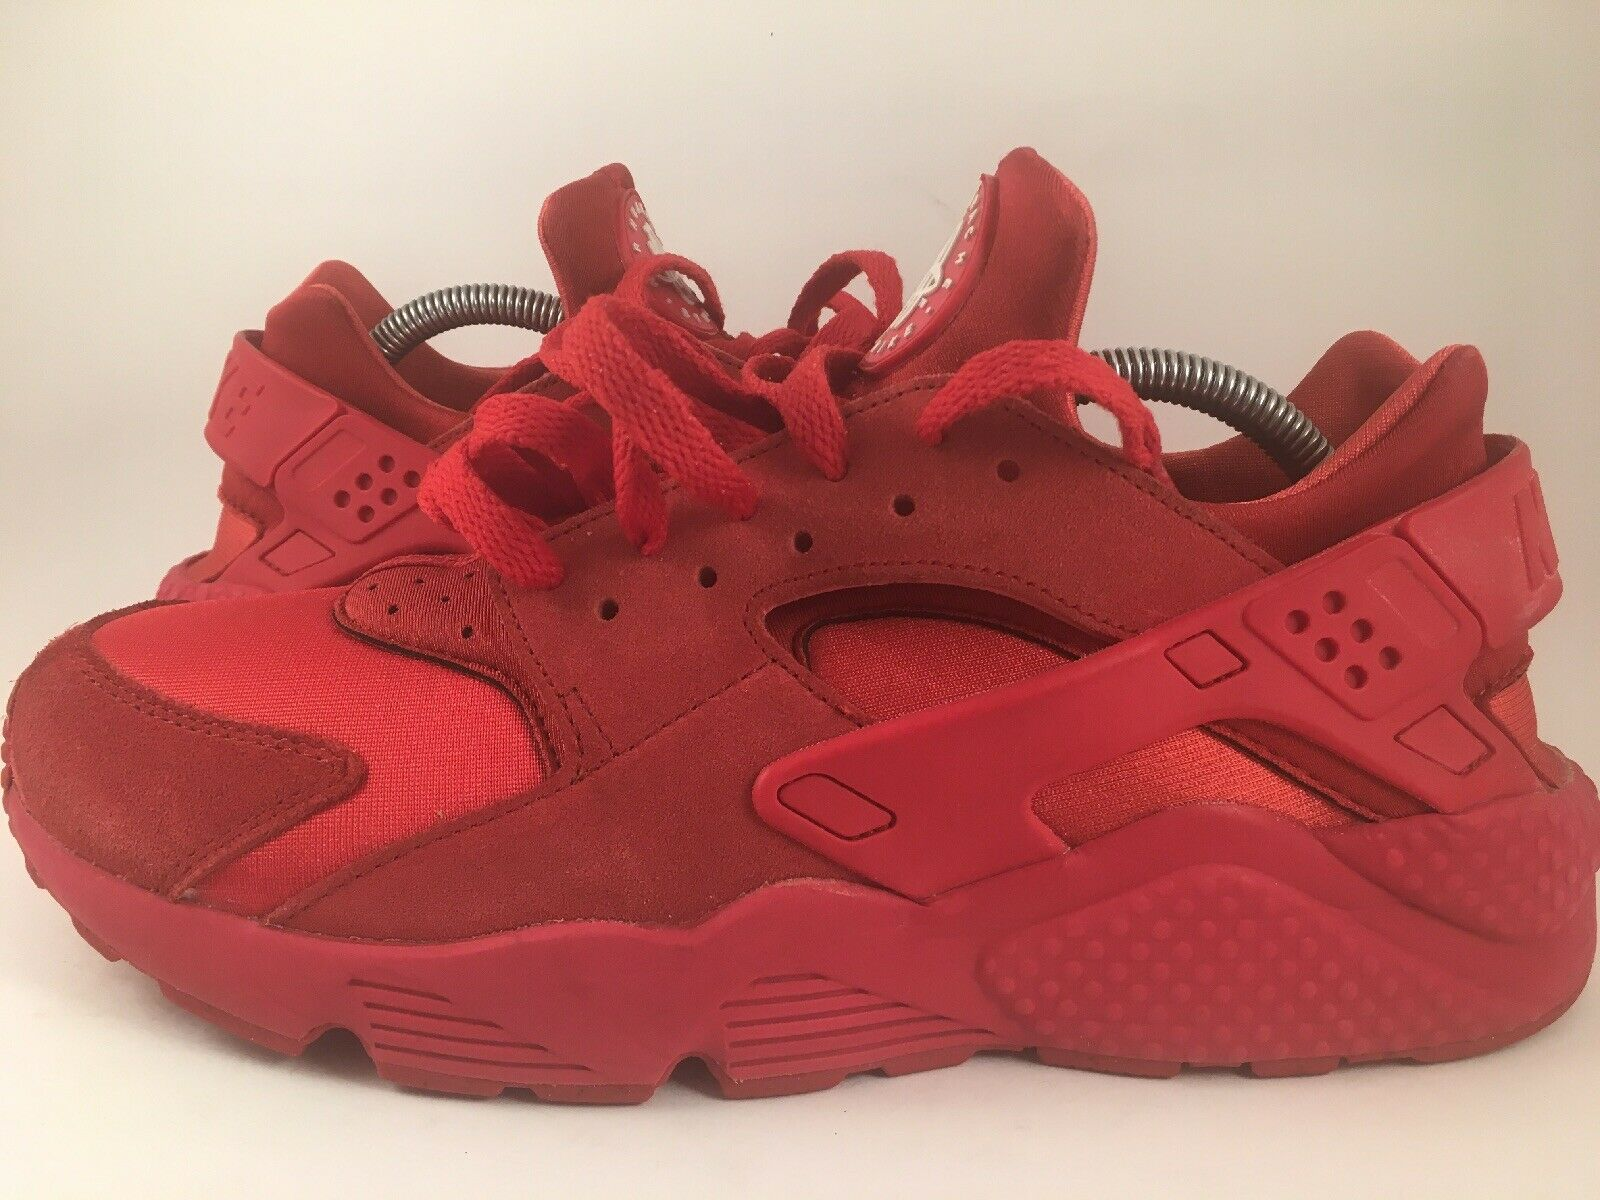 MENS NIKE AIR HUARACHE ID RED-RED SZ 10.5  RED OCTOBER